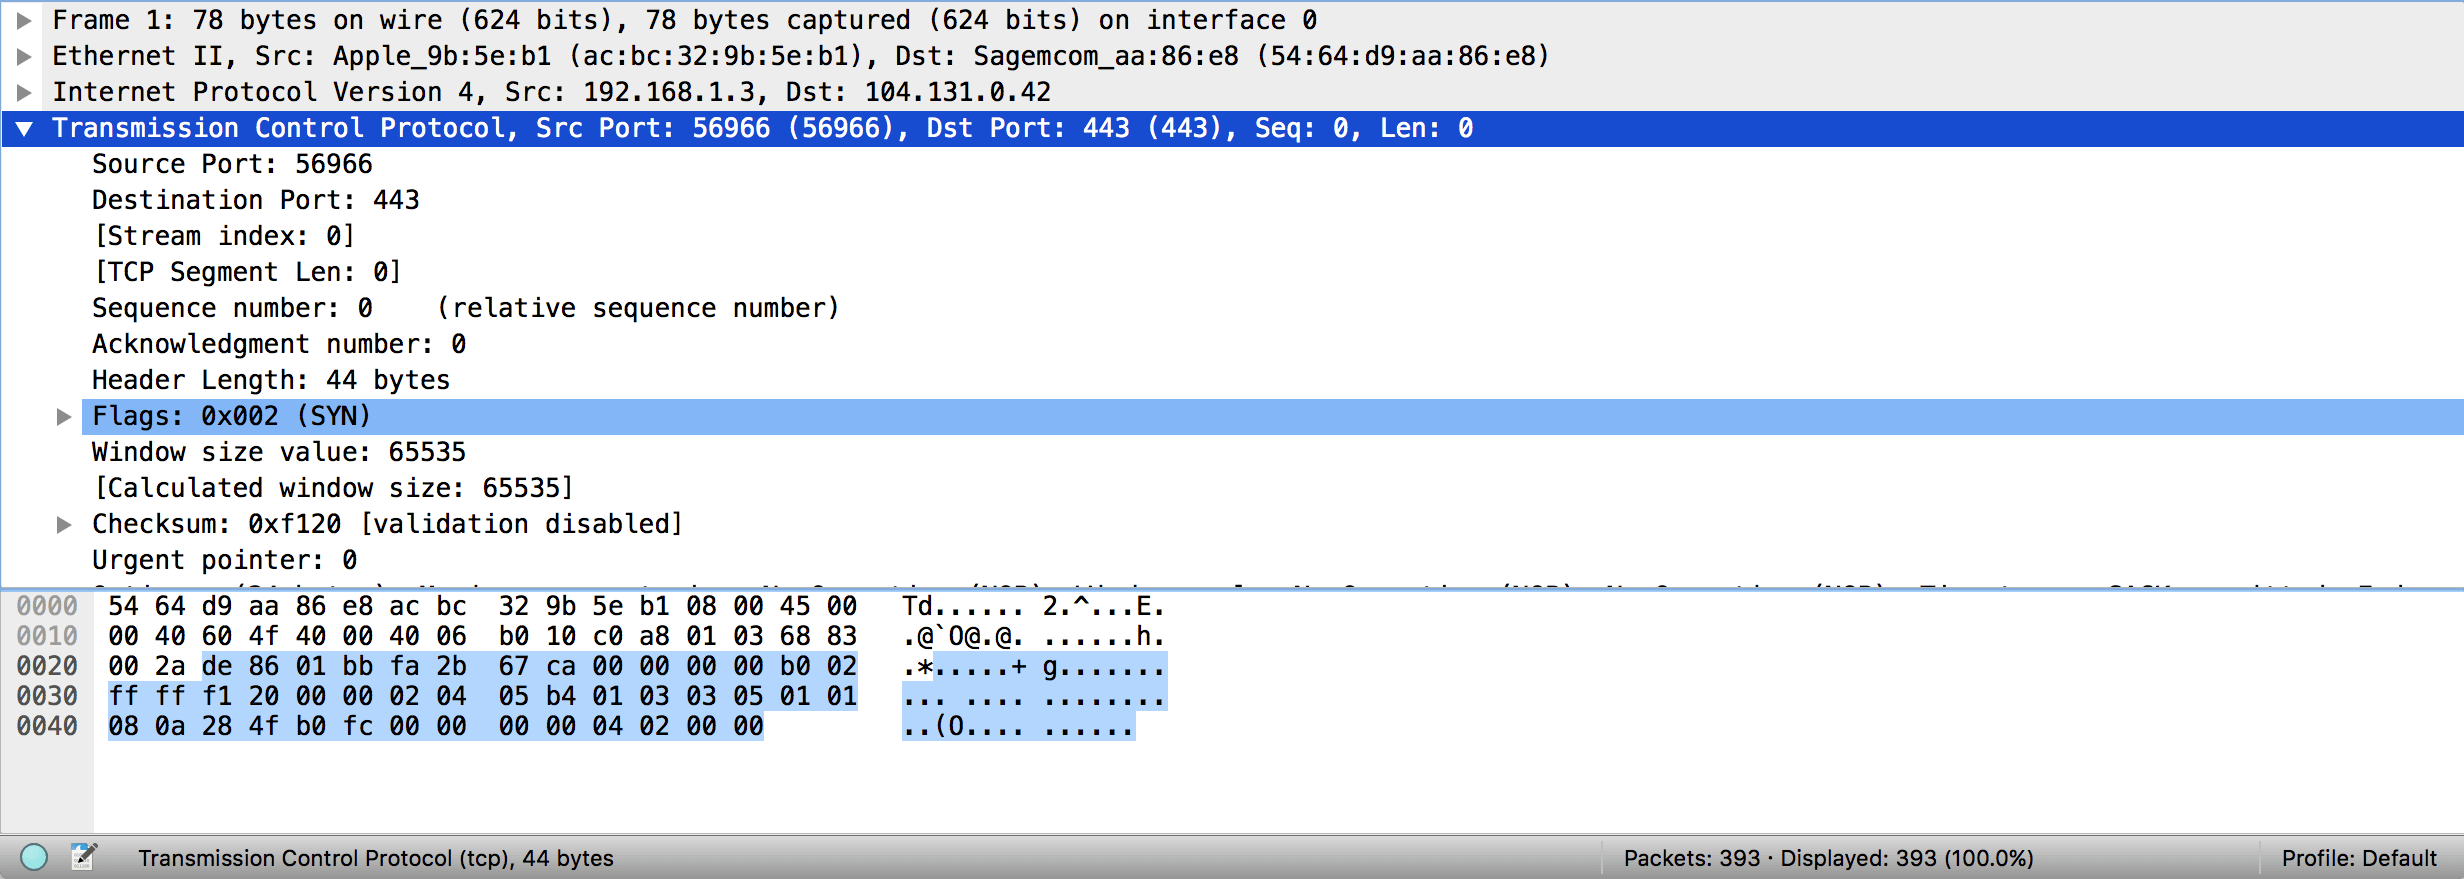 Detail view of single packet in Wireshark